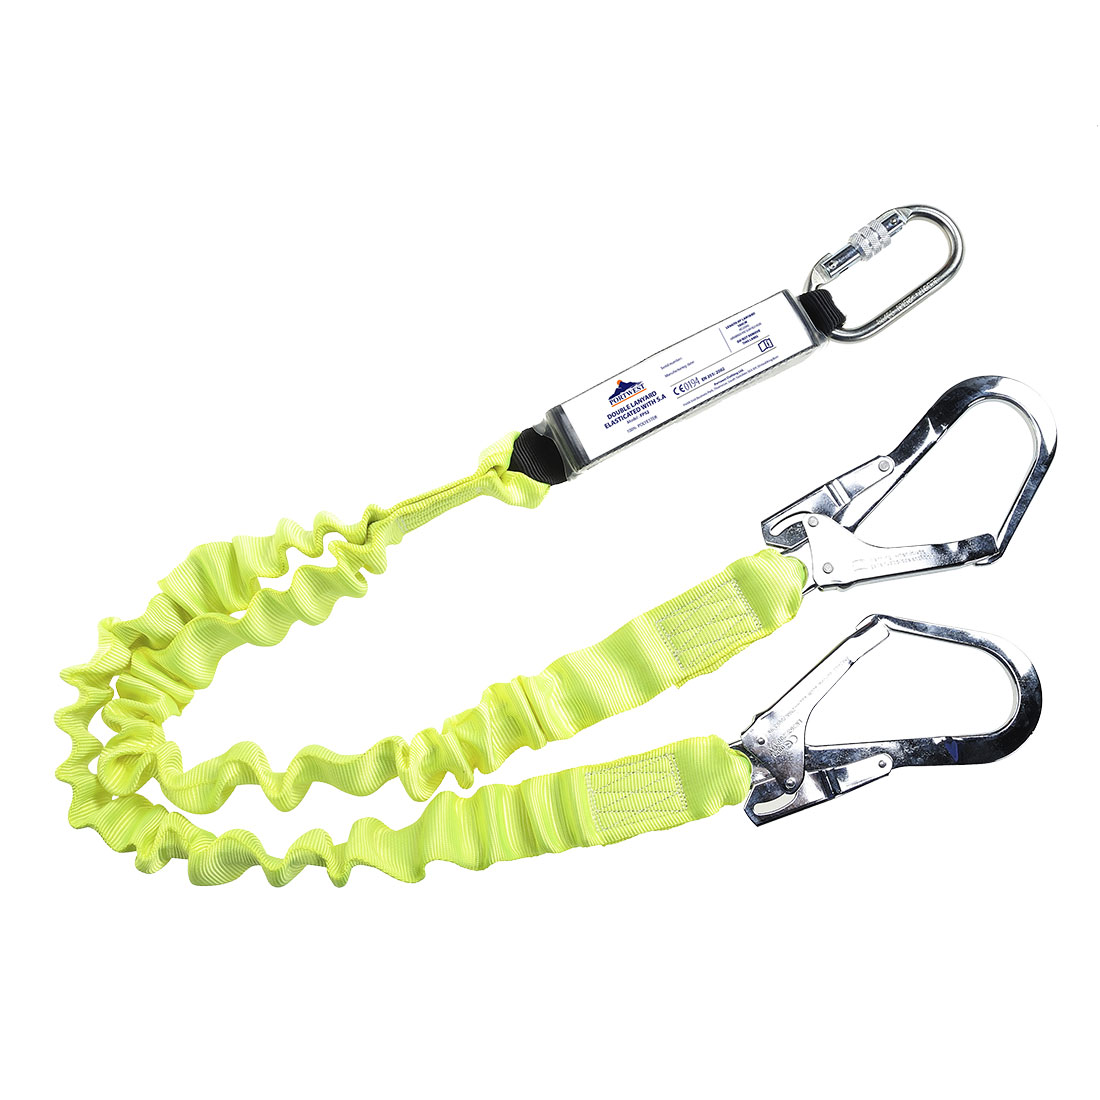 Portwest Double Lanyard Elasticated With Shock Absorber - FP52